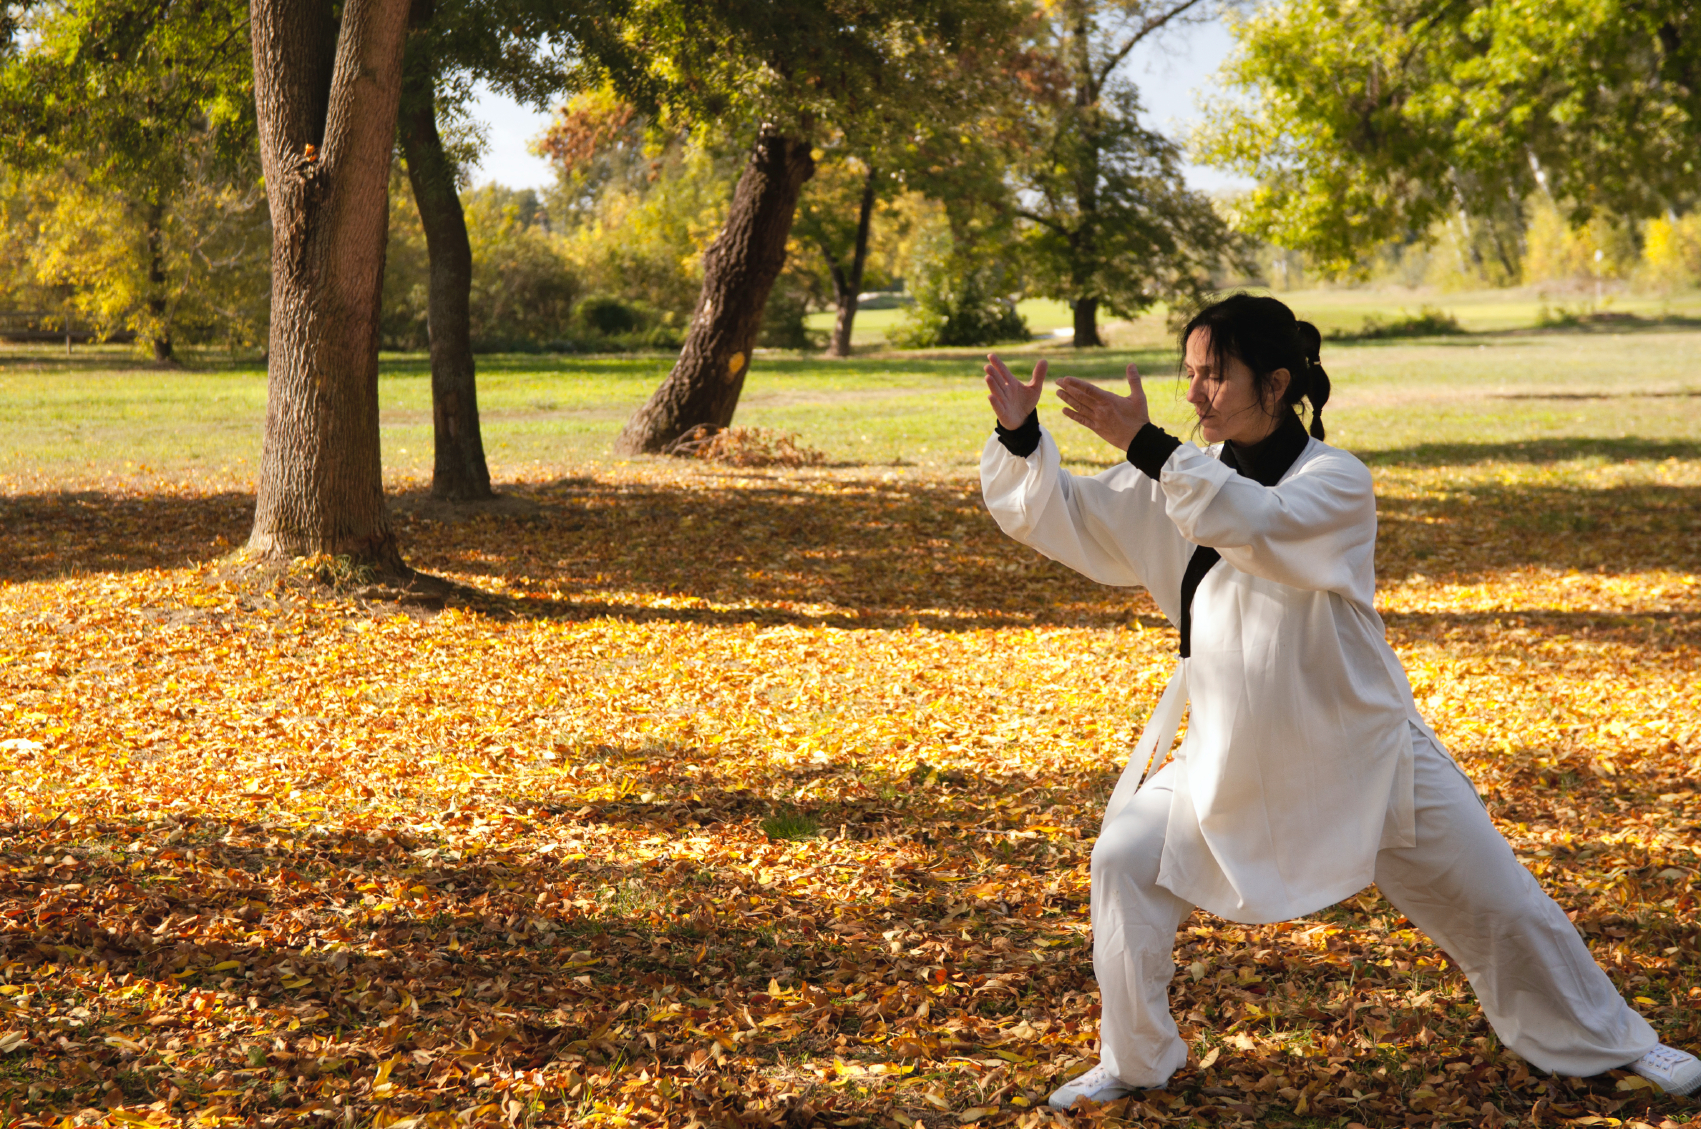 woman practicing ki gong